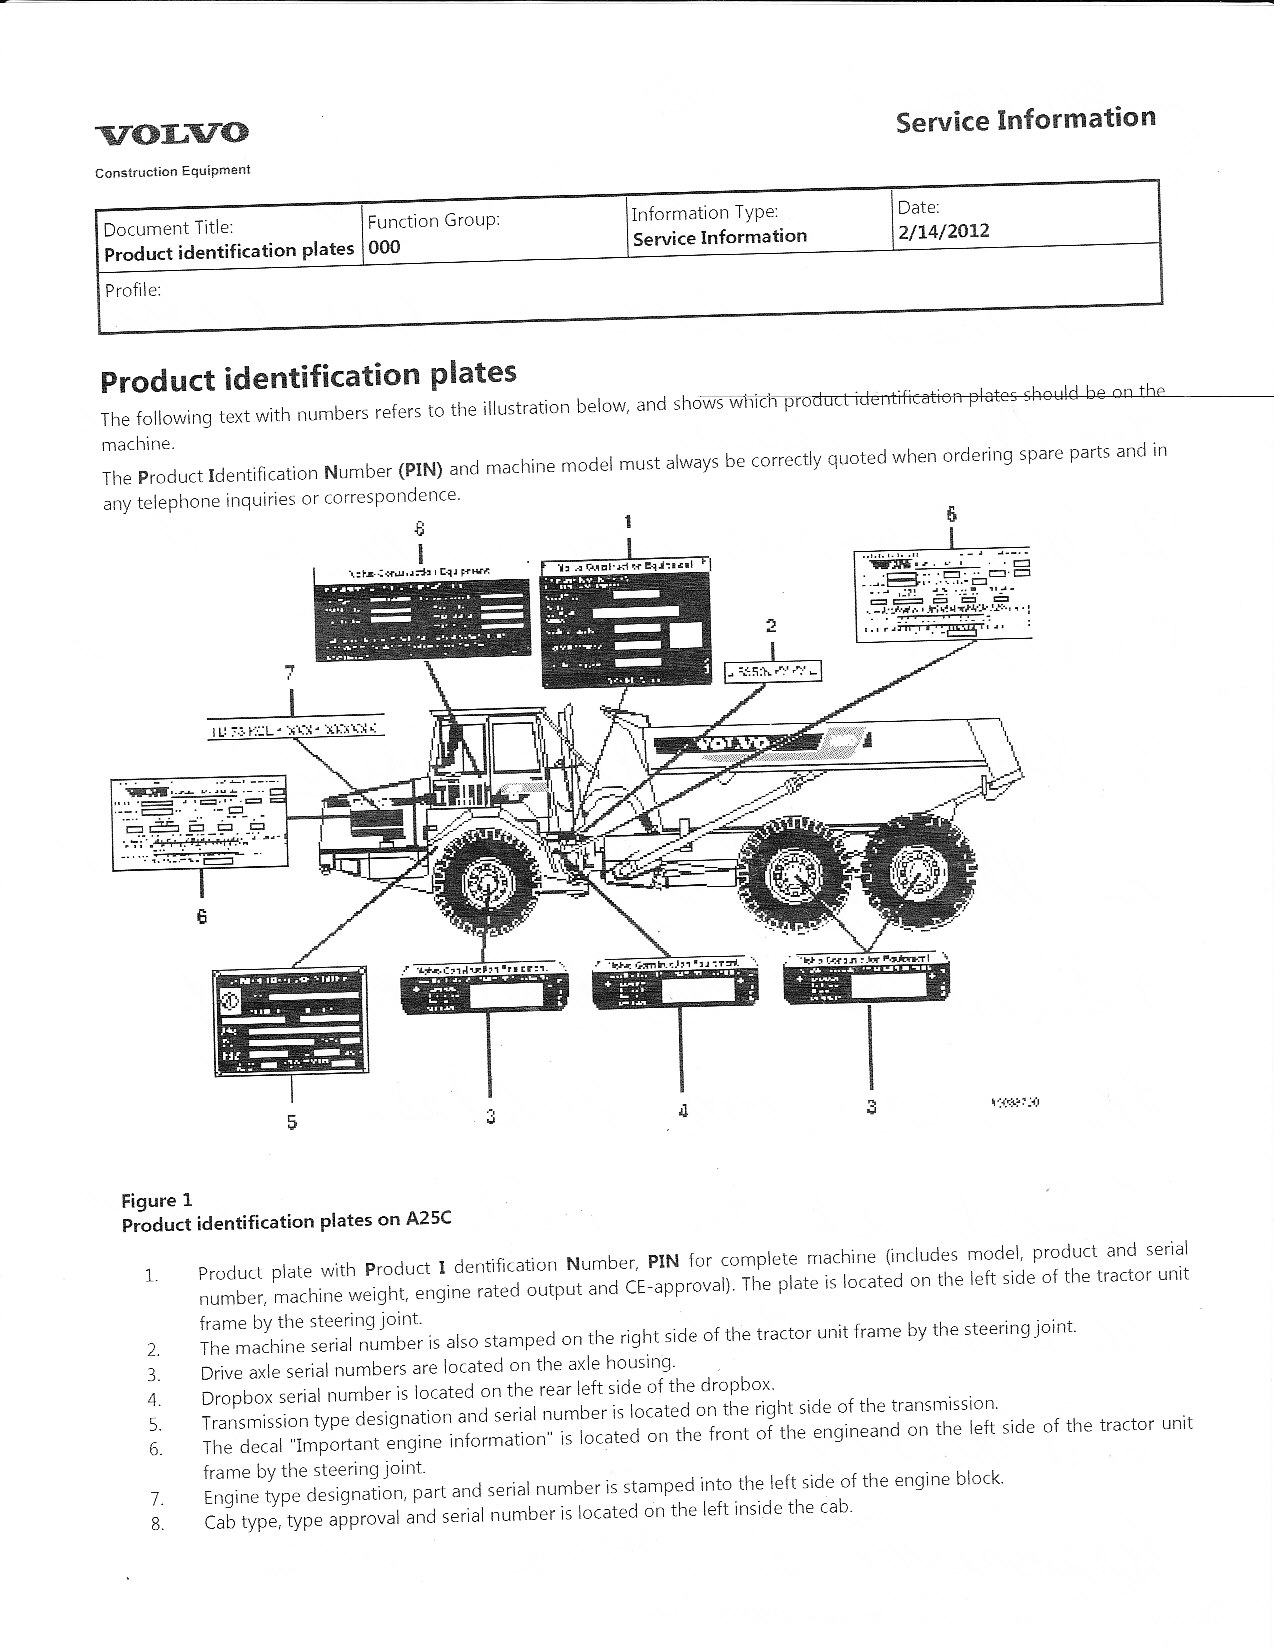 Where can I find the Serial number on a Volvo articulated dump truck